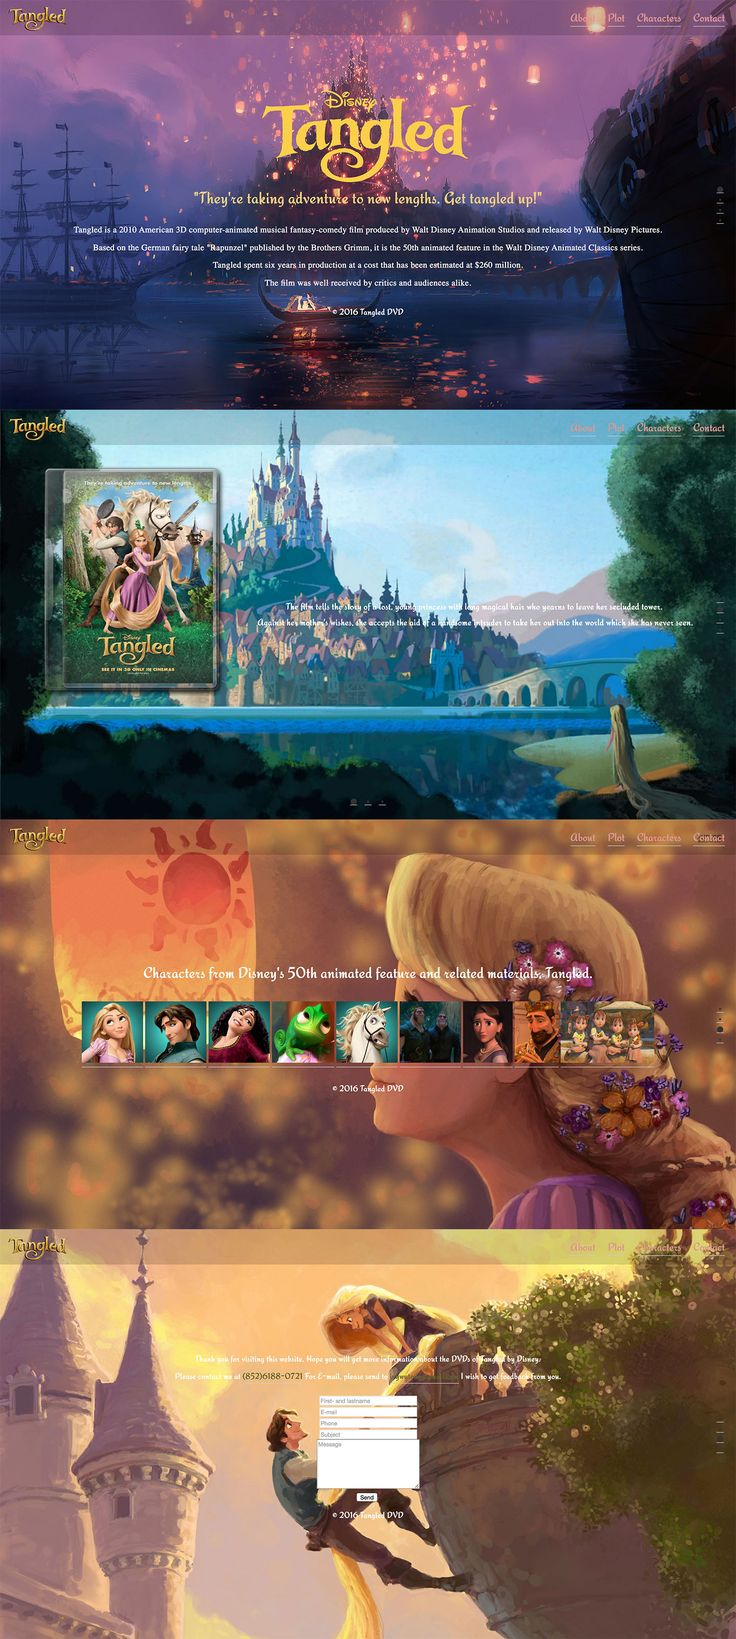 Tangled DVD designed by Ivy Tong